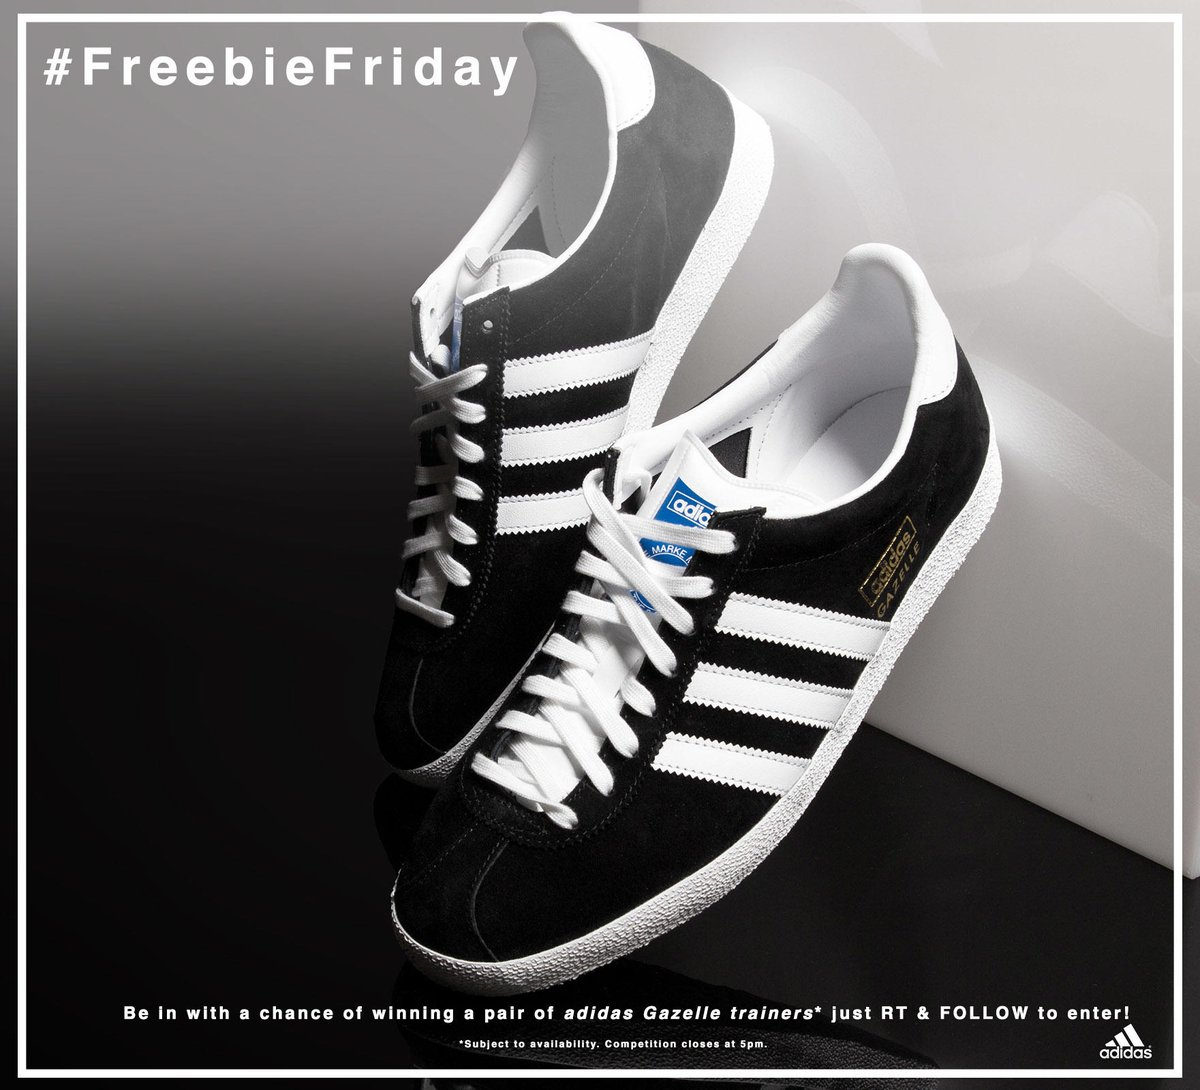 win a pair of adidas gazelle sneakers